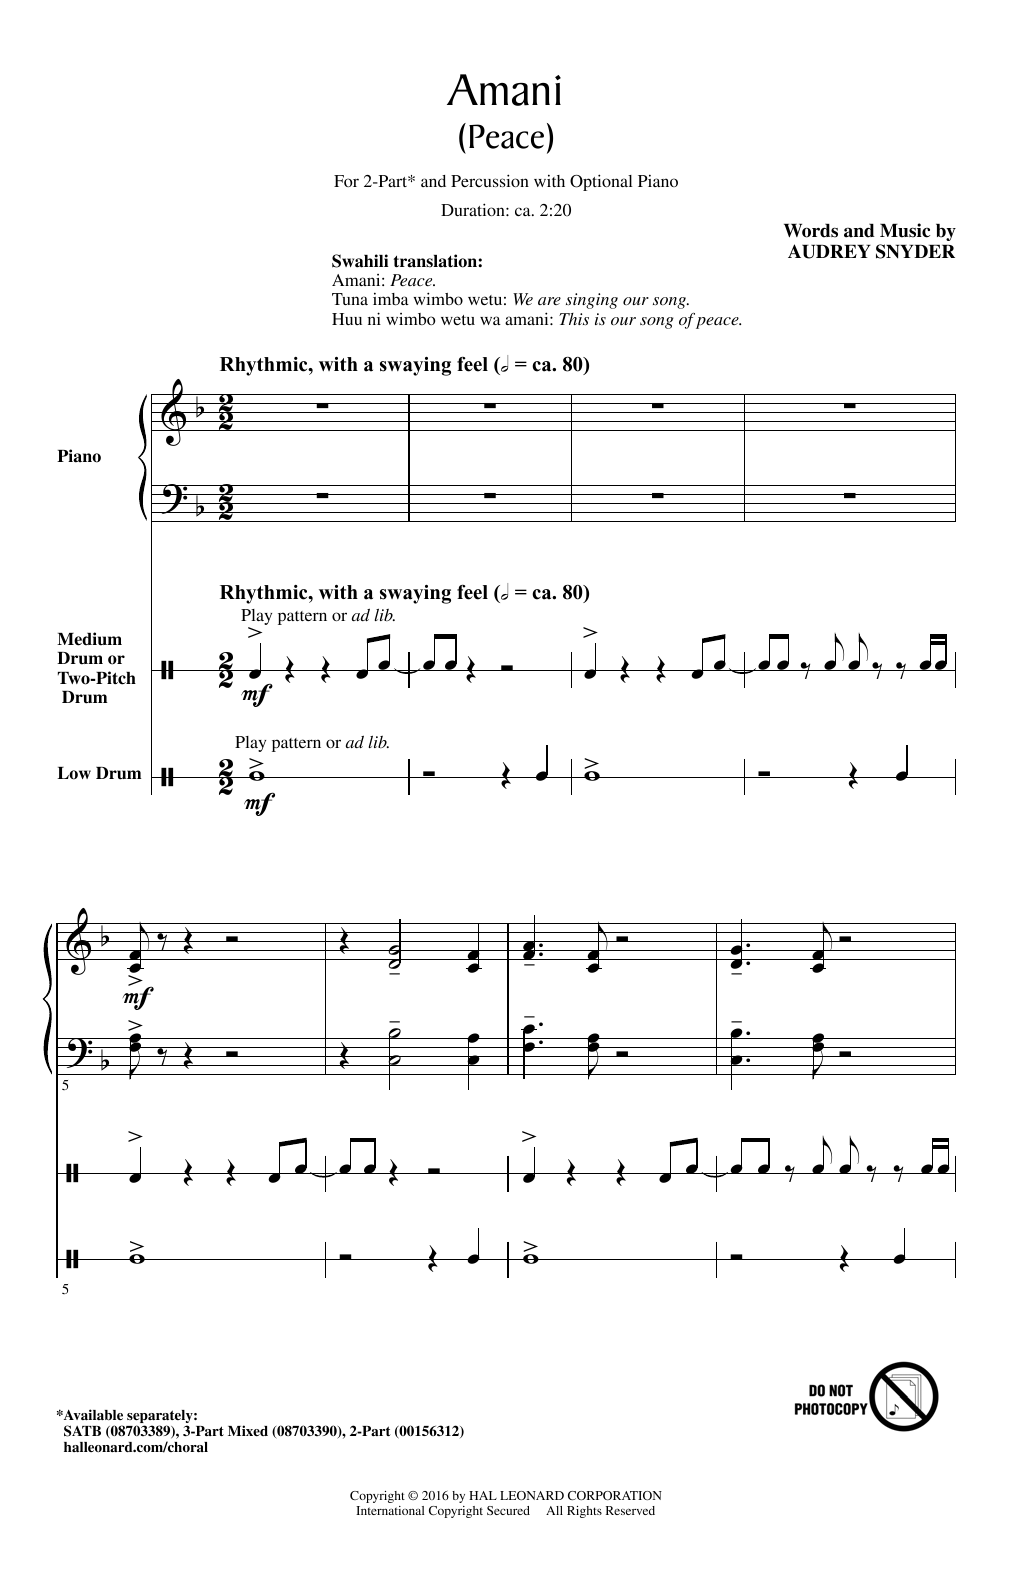 Amani (Peace) Sheet Music